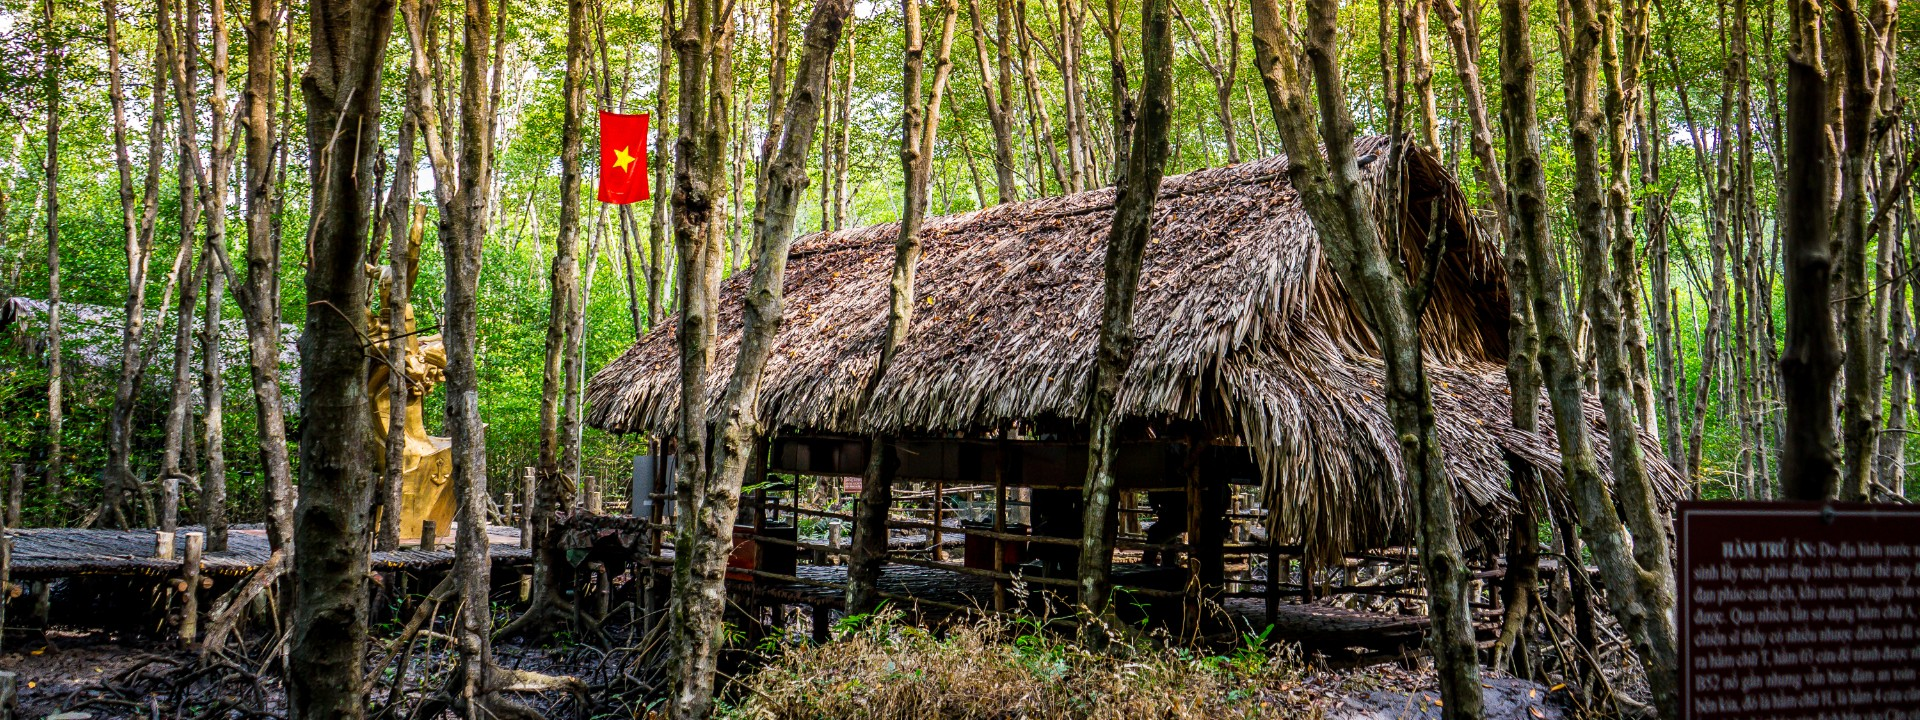 Discover the National Biosphere Reserve of Can Gio